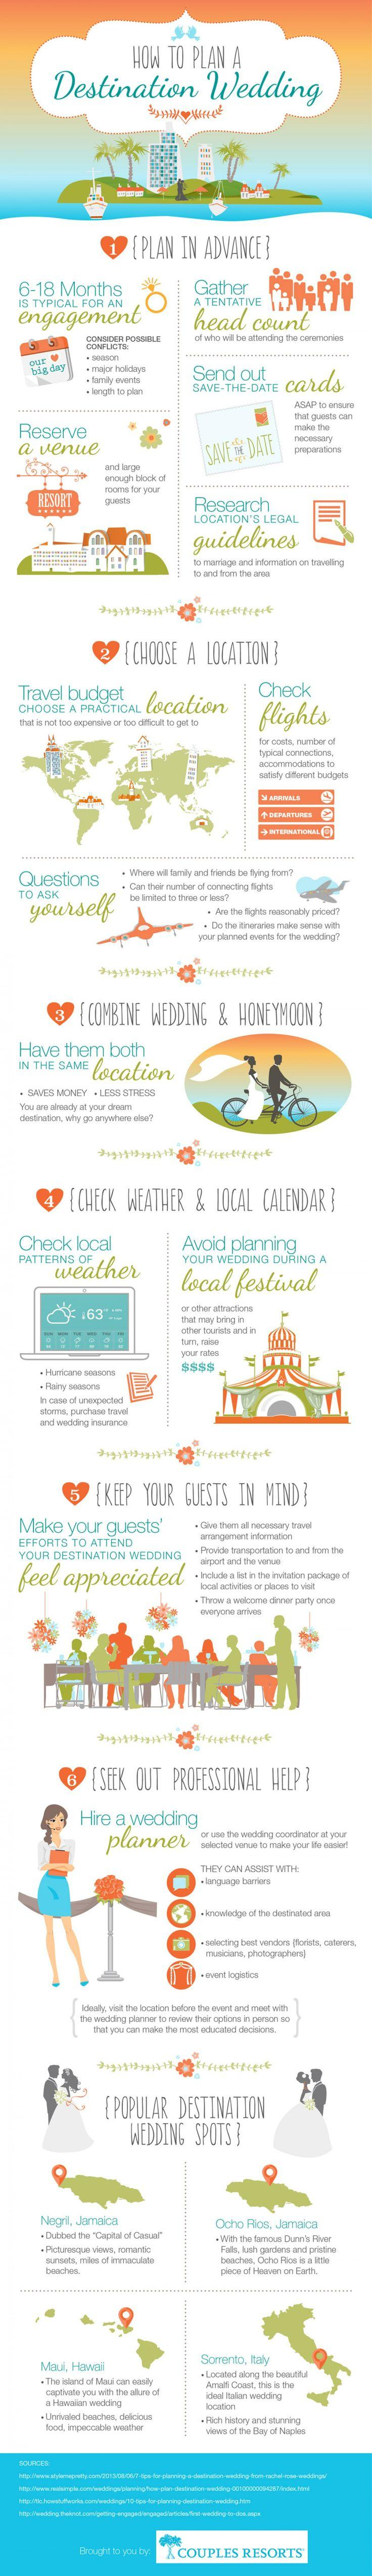 Wedding - How To Plan A Destination Wedding